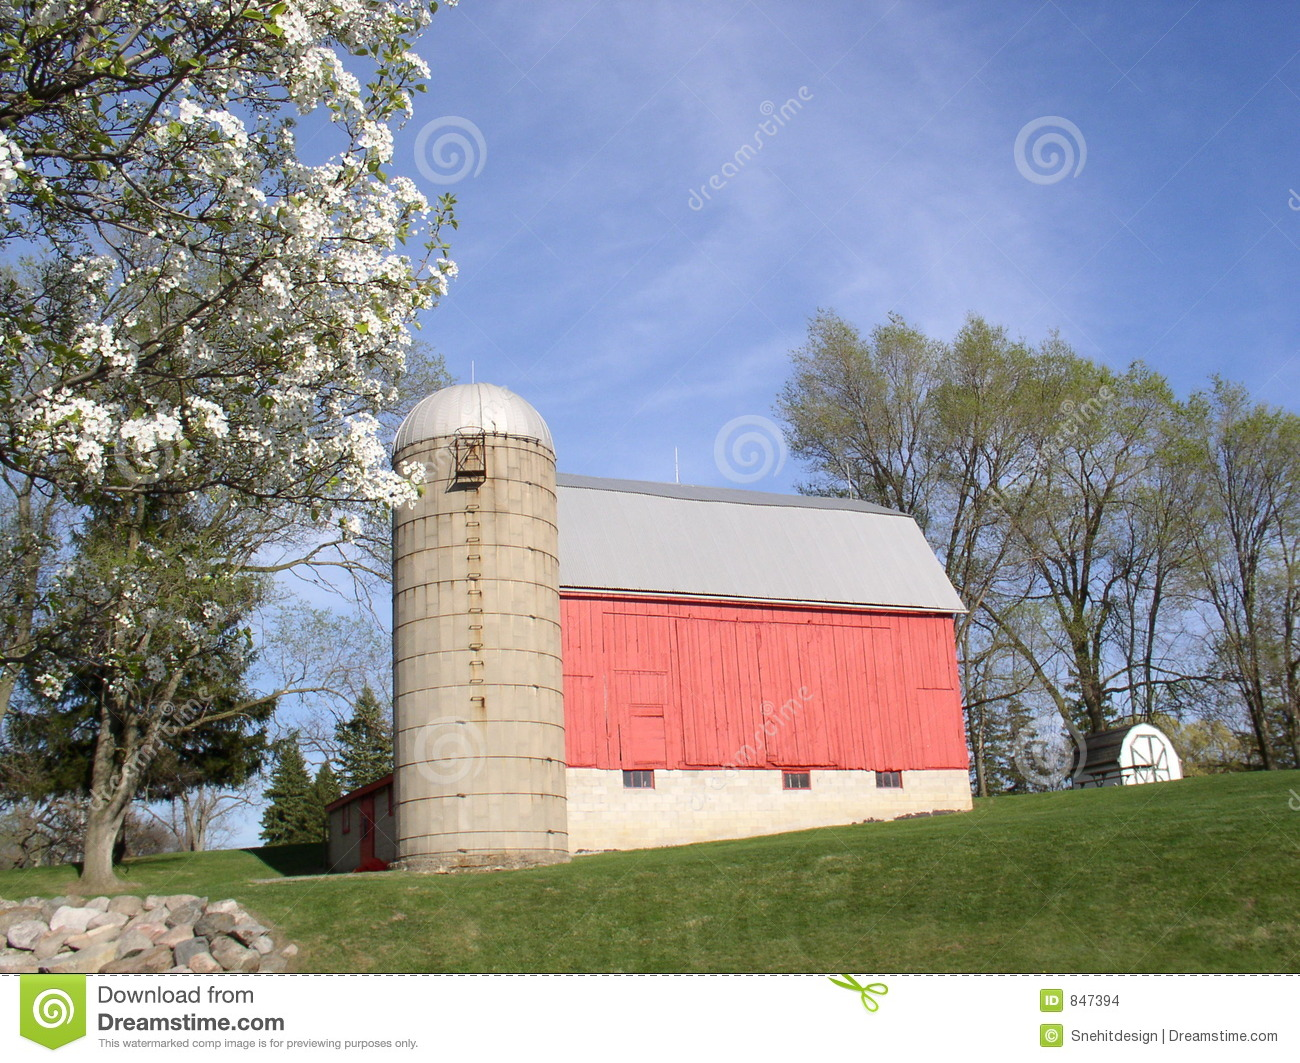 Cow on green pasture with red barn with grain silo royalty free stock - Royalty Free Stock Photo Barn Blue Countryside Grain Red Silo